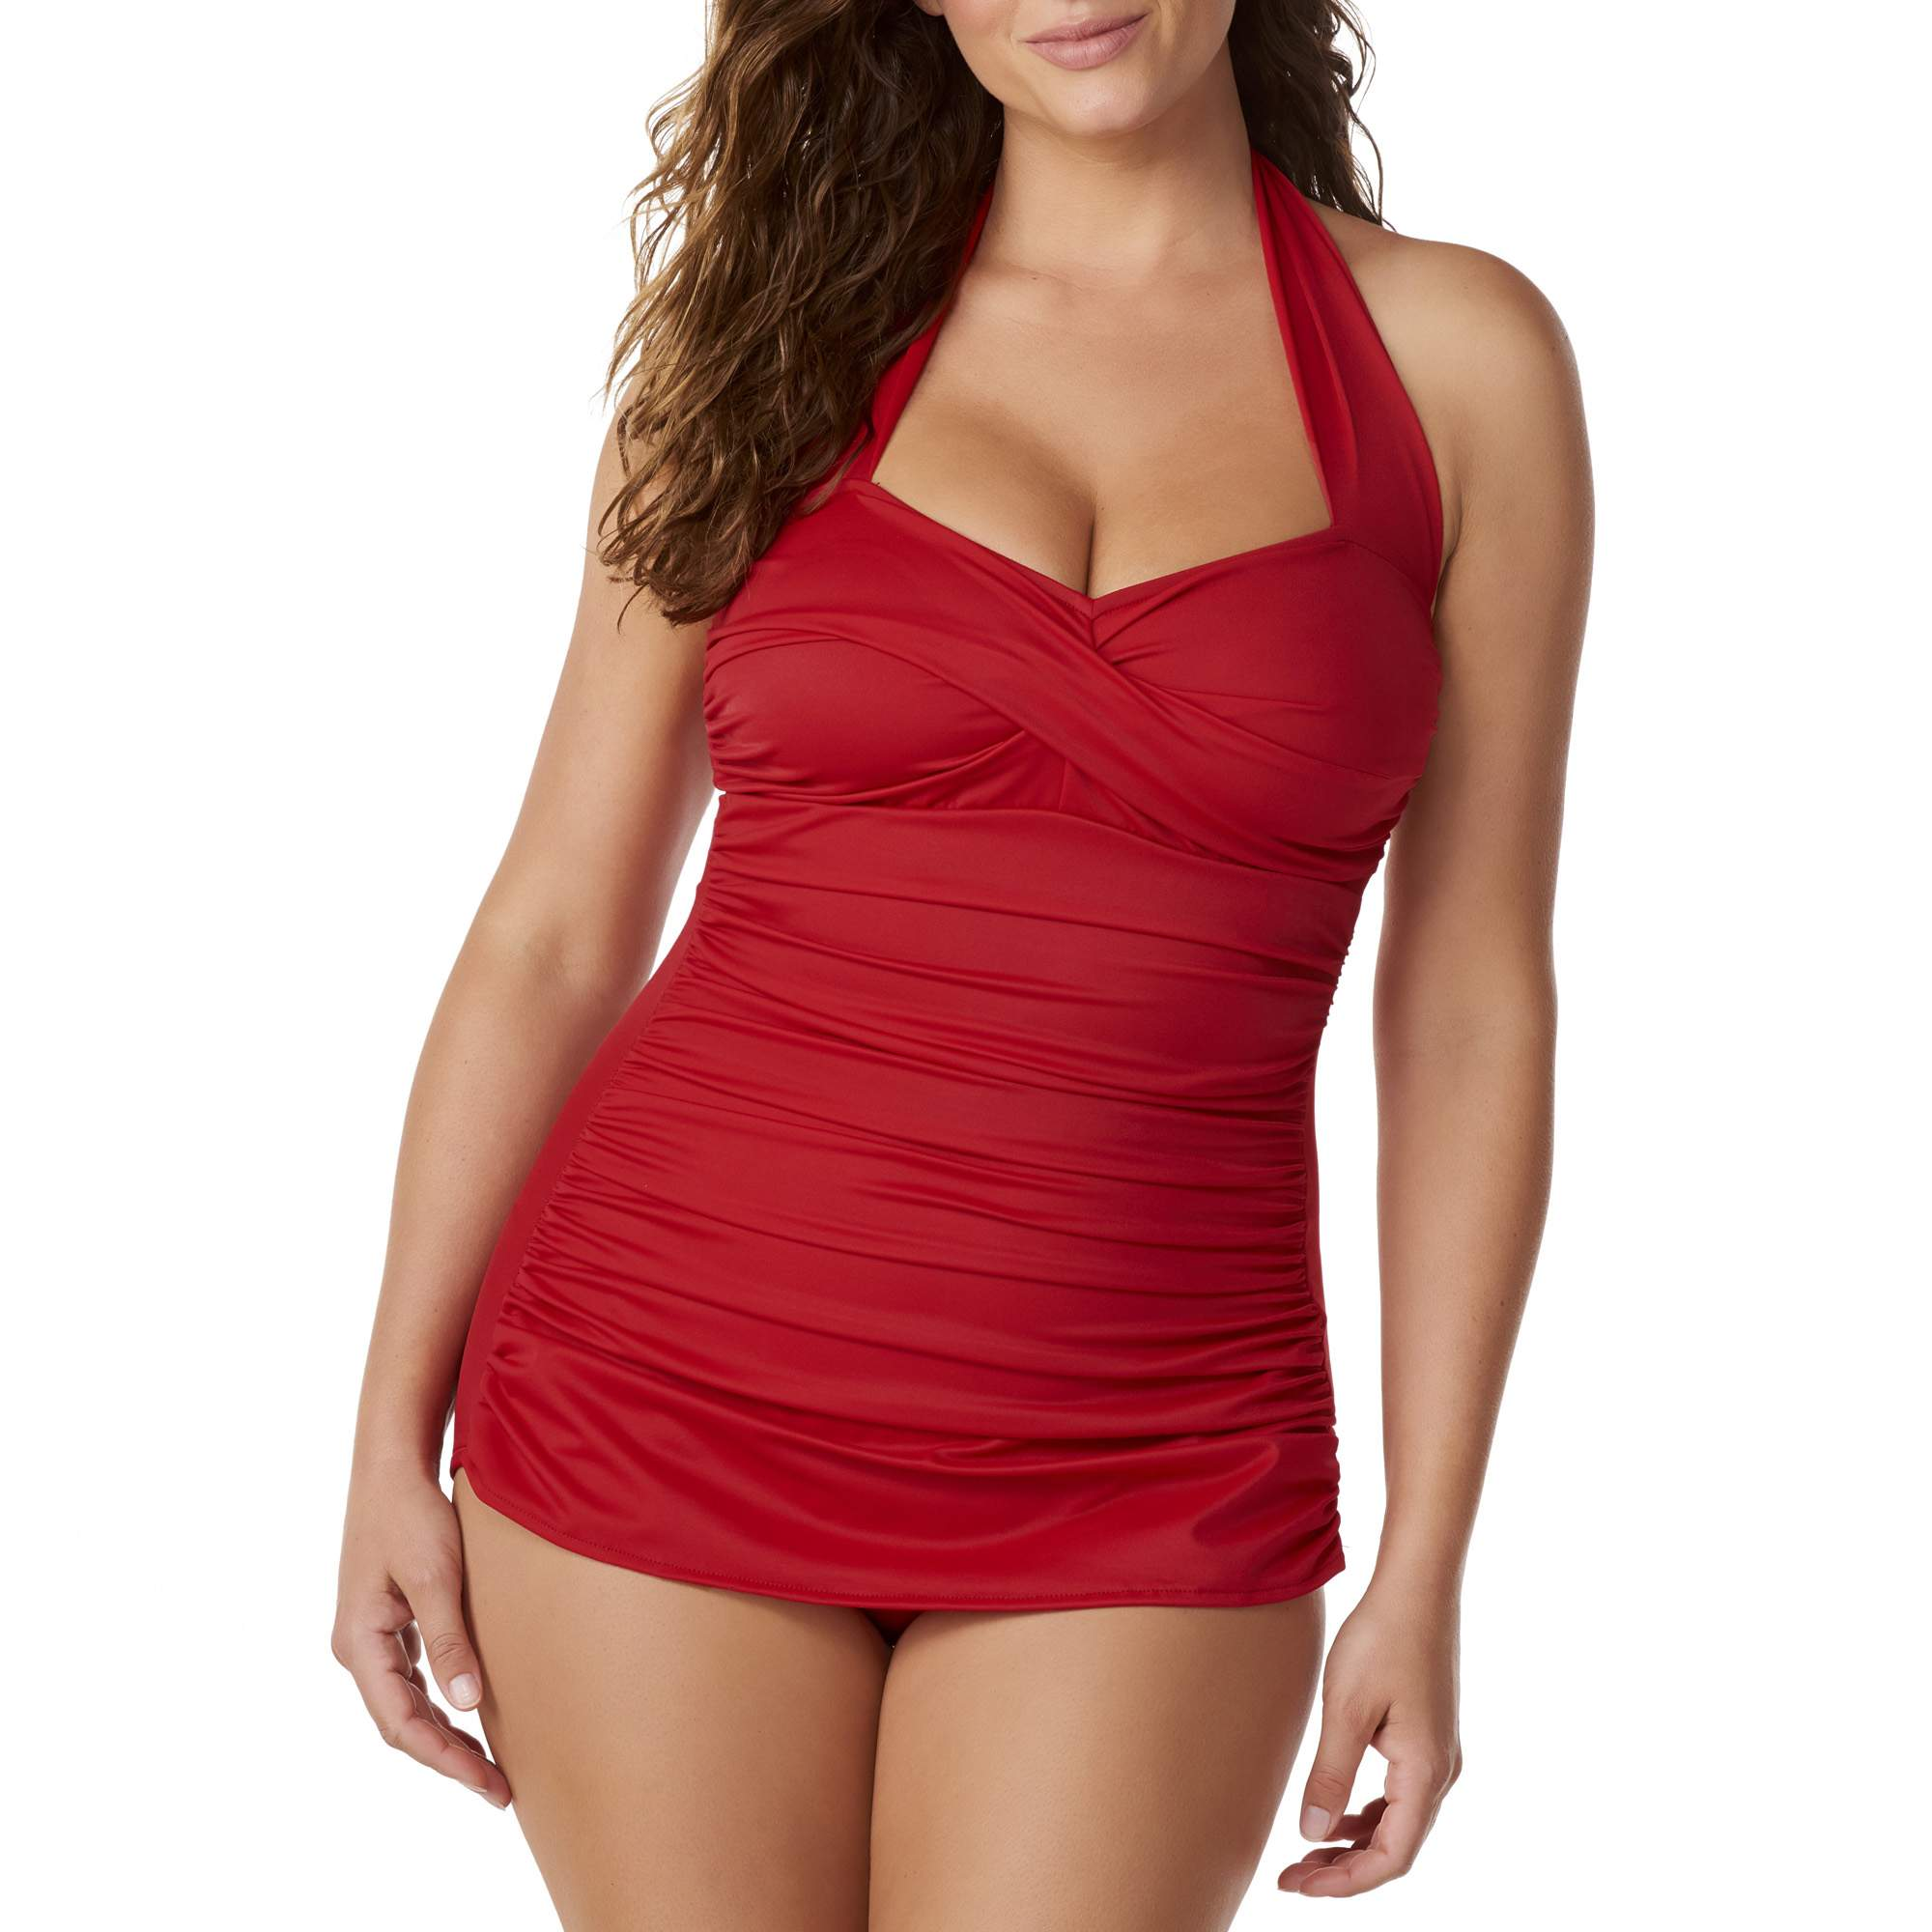 Simply Slim Womens Slimming Shirred Halter One-Piece Swimsuit